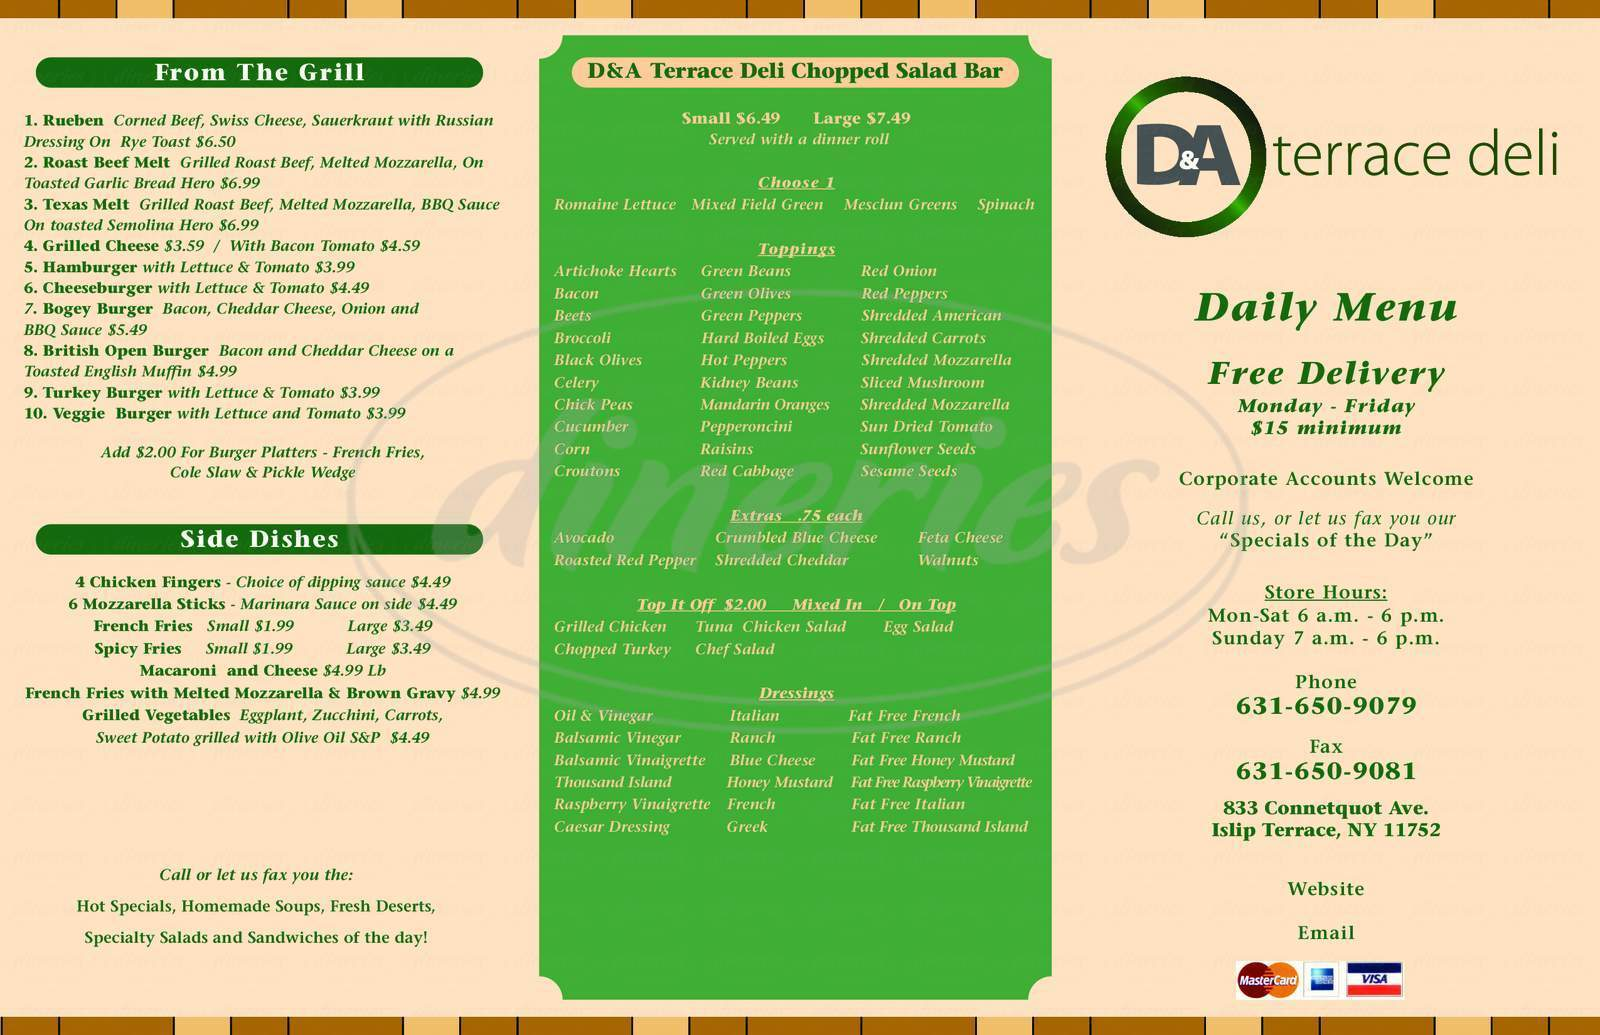 menu for D&A Terrace Deli